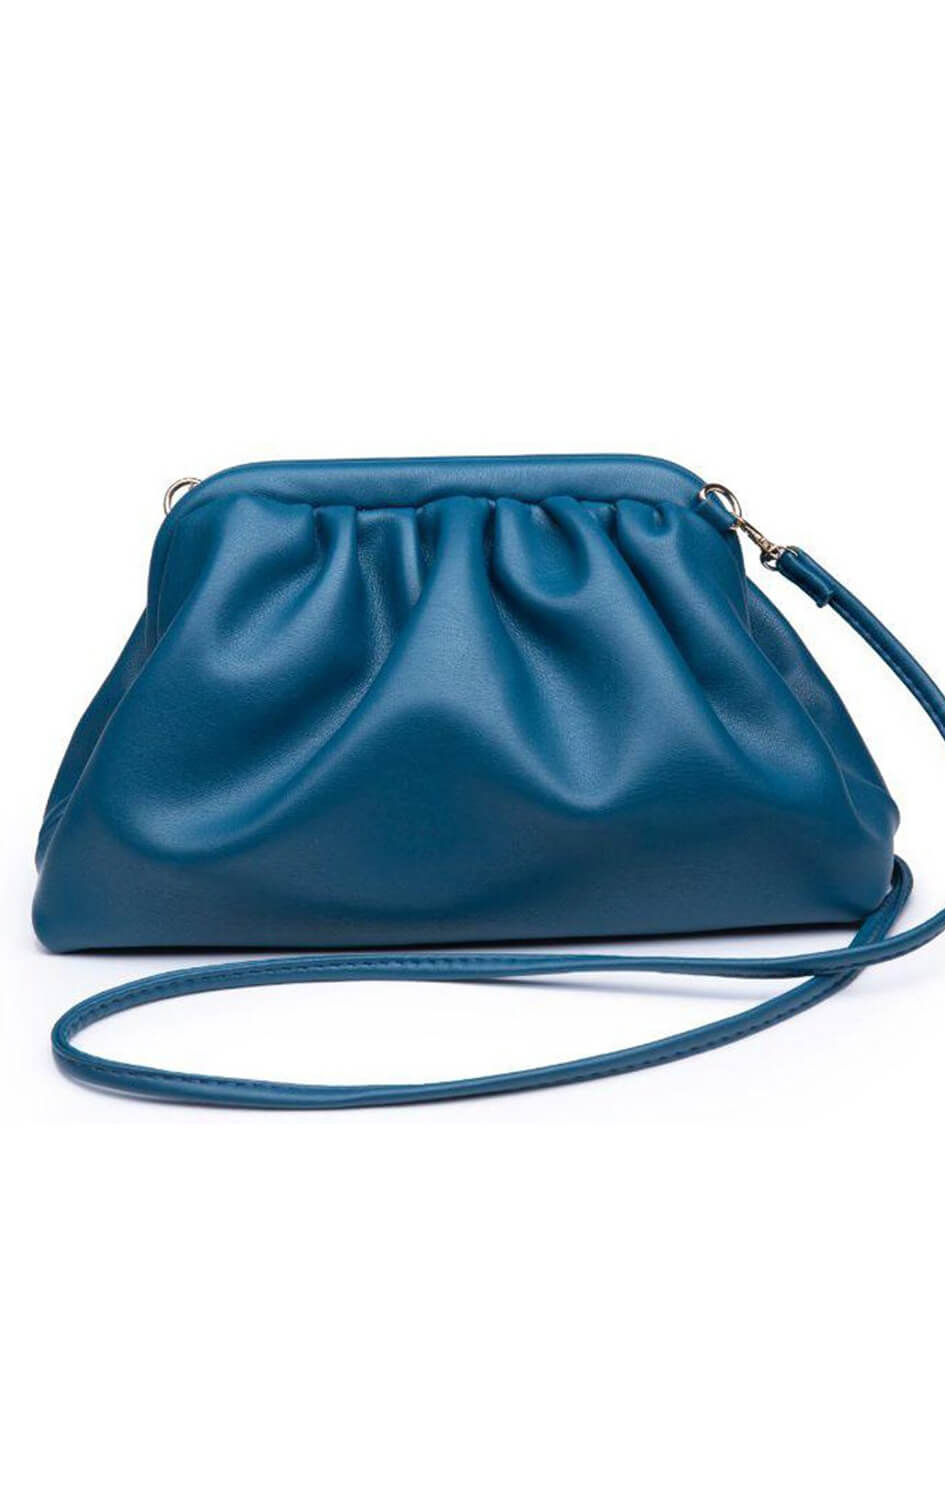 shop-dana-scott-emerald-green-leahter-maison-pouch-clutch-cross-body-purse